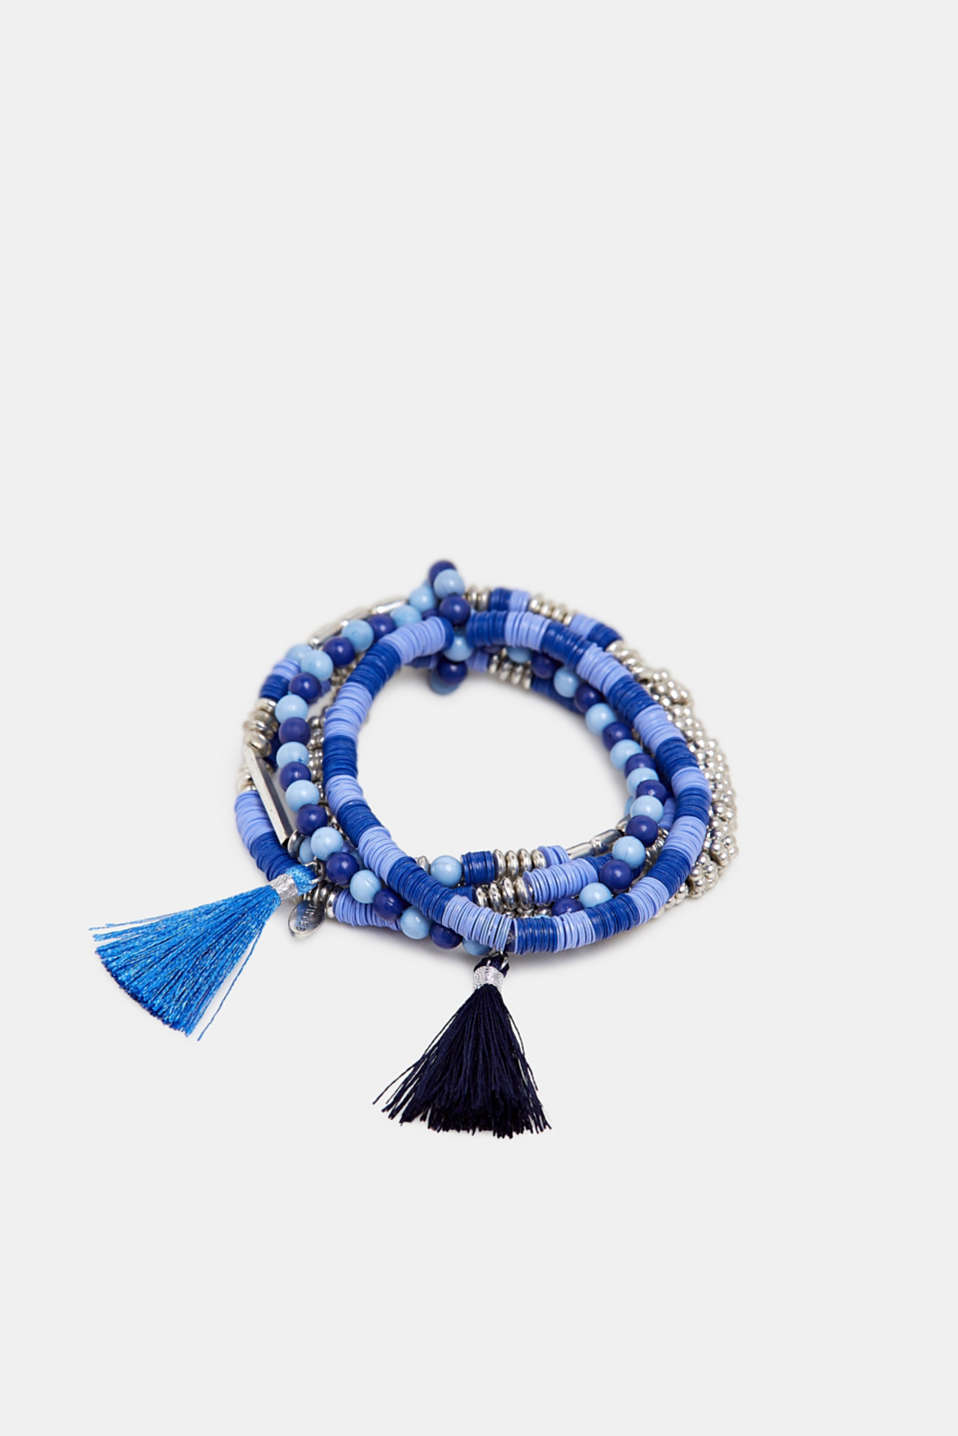 Set of bead bracelets with tassels